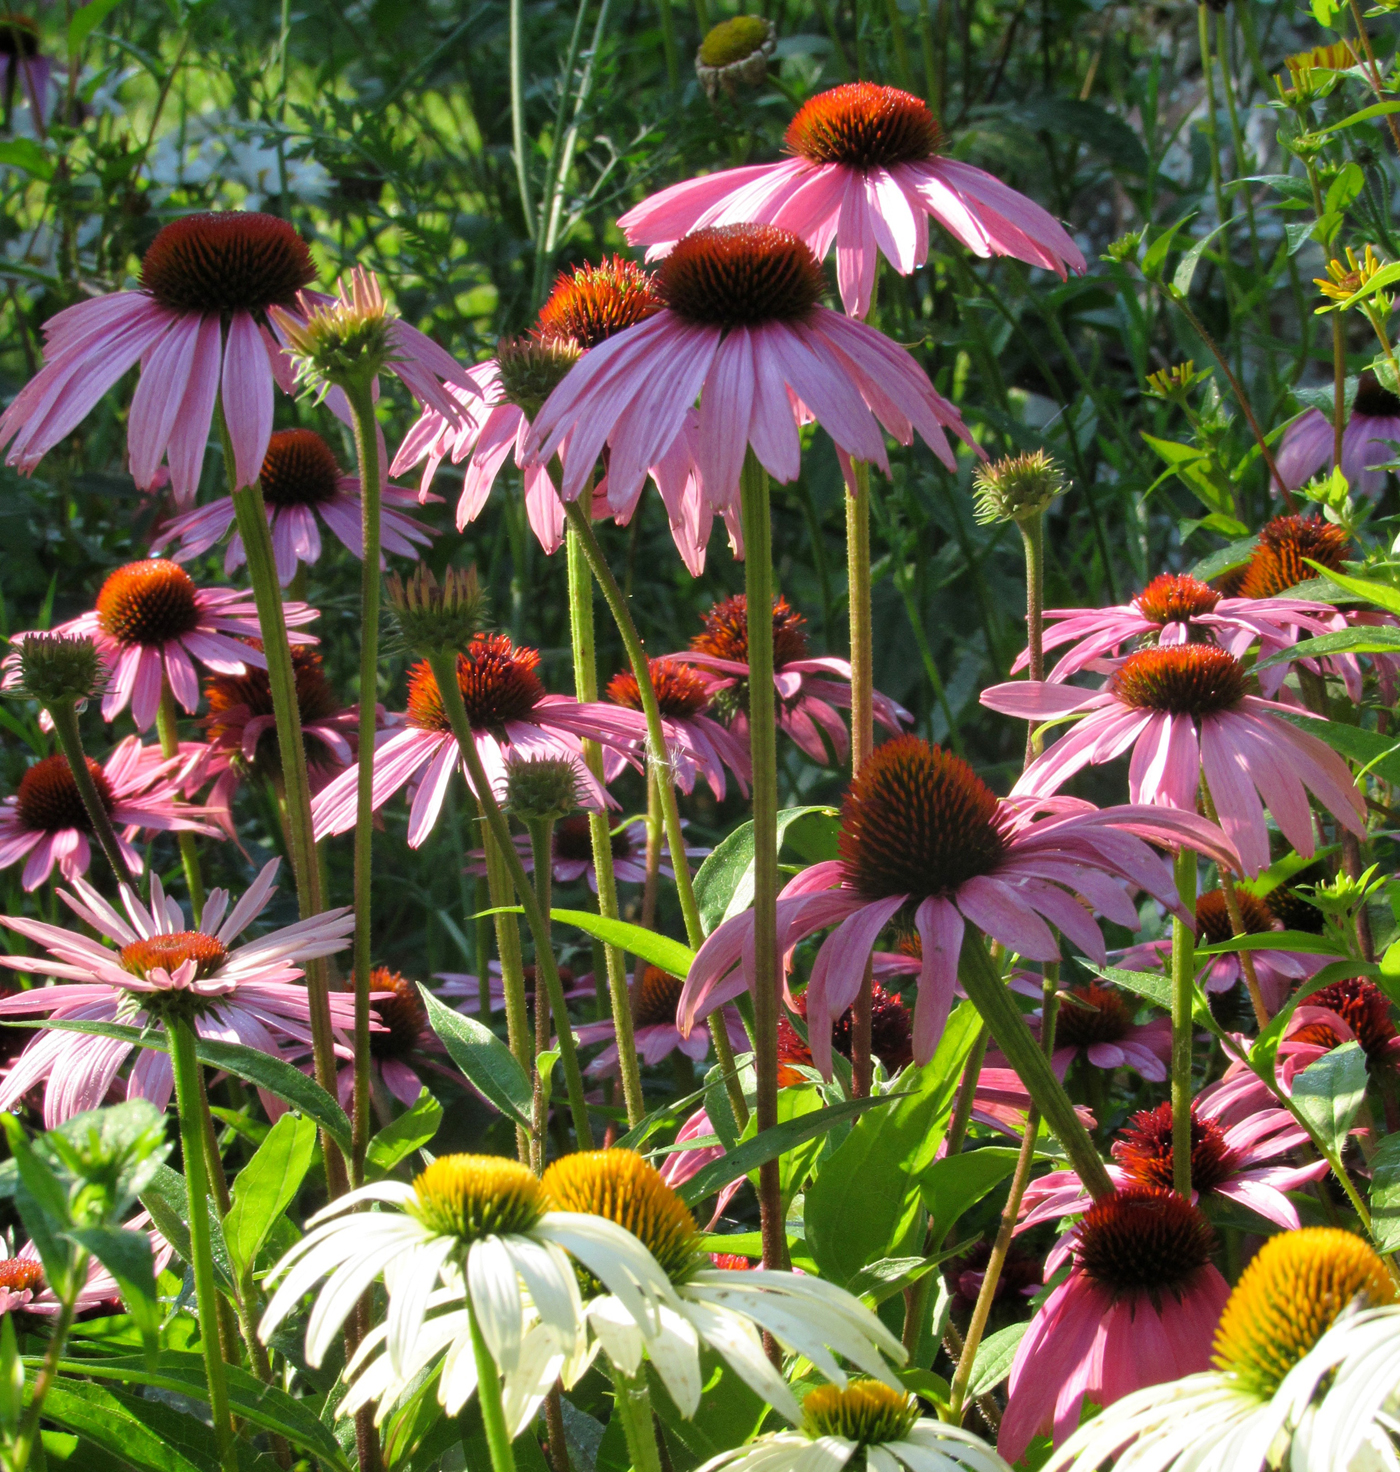 Purple Coneflowers are easy to grow from seed in the garden. K. Gabalski photo